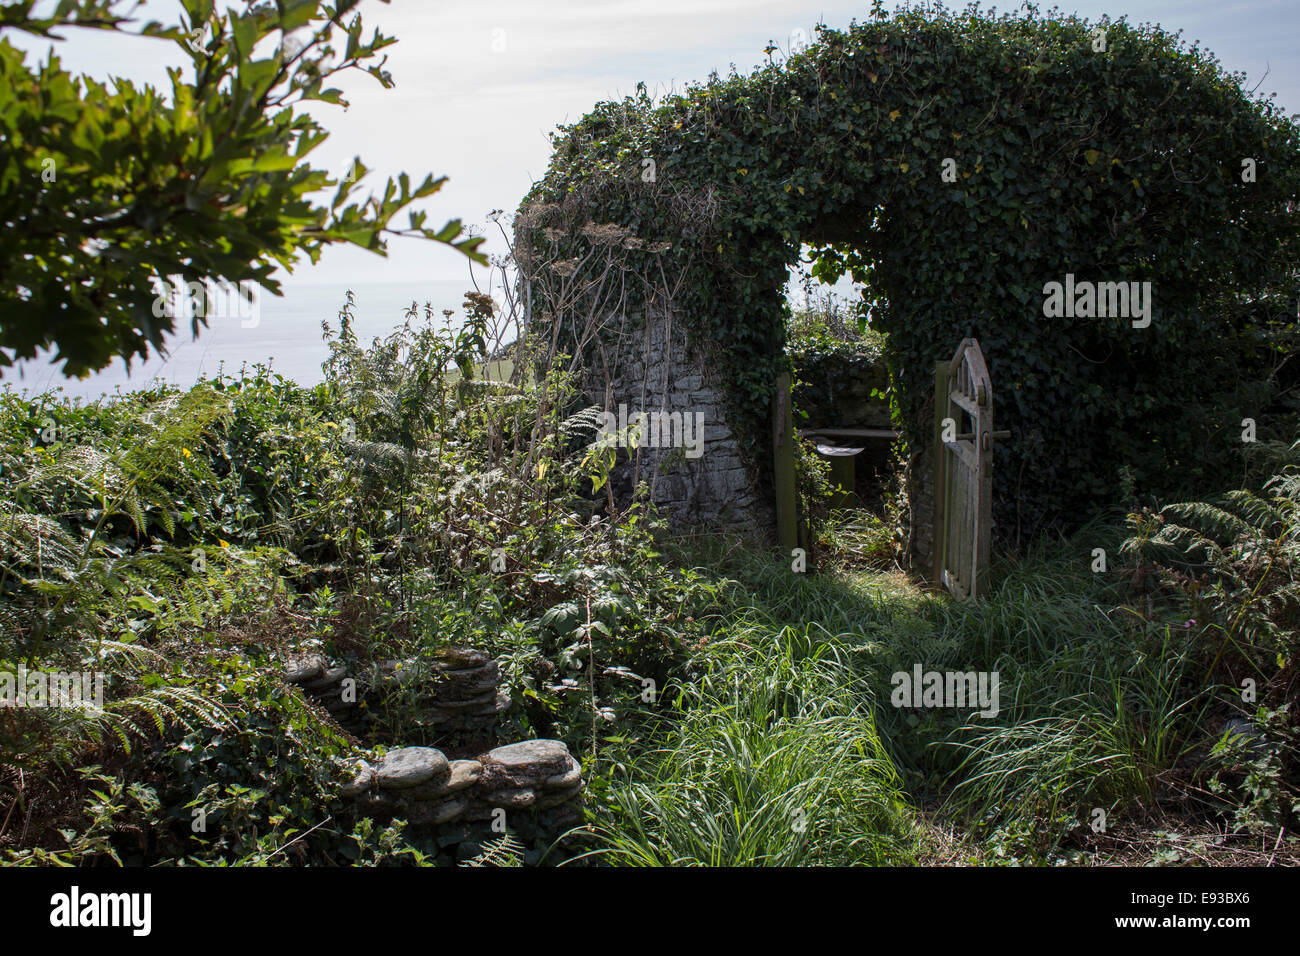 Ramshackle country garden at Peter Webber's hut at East Prawle, Devon - Stock Image